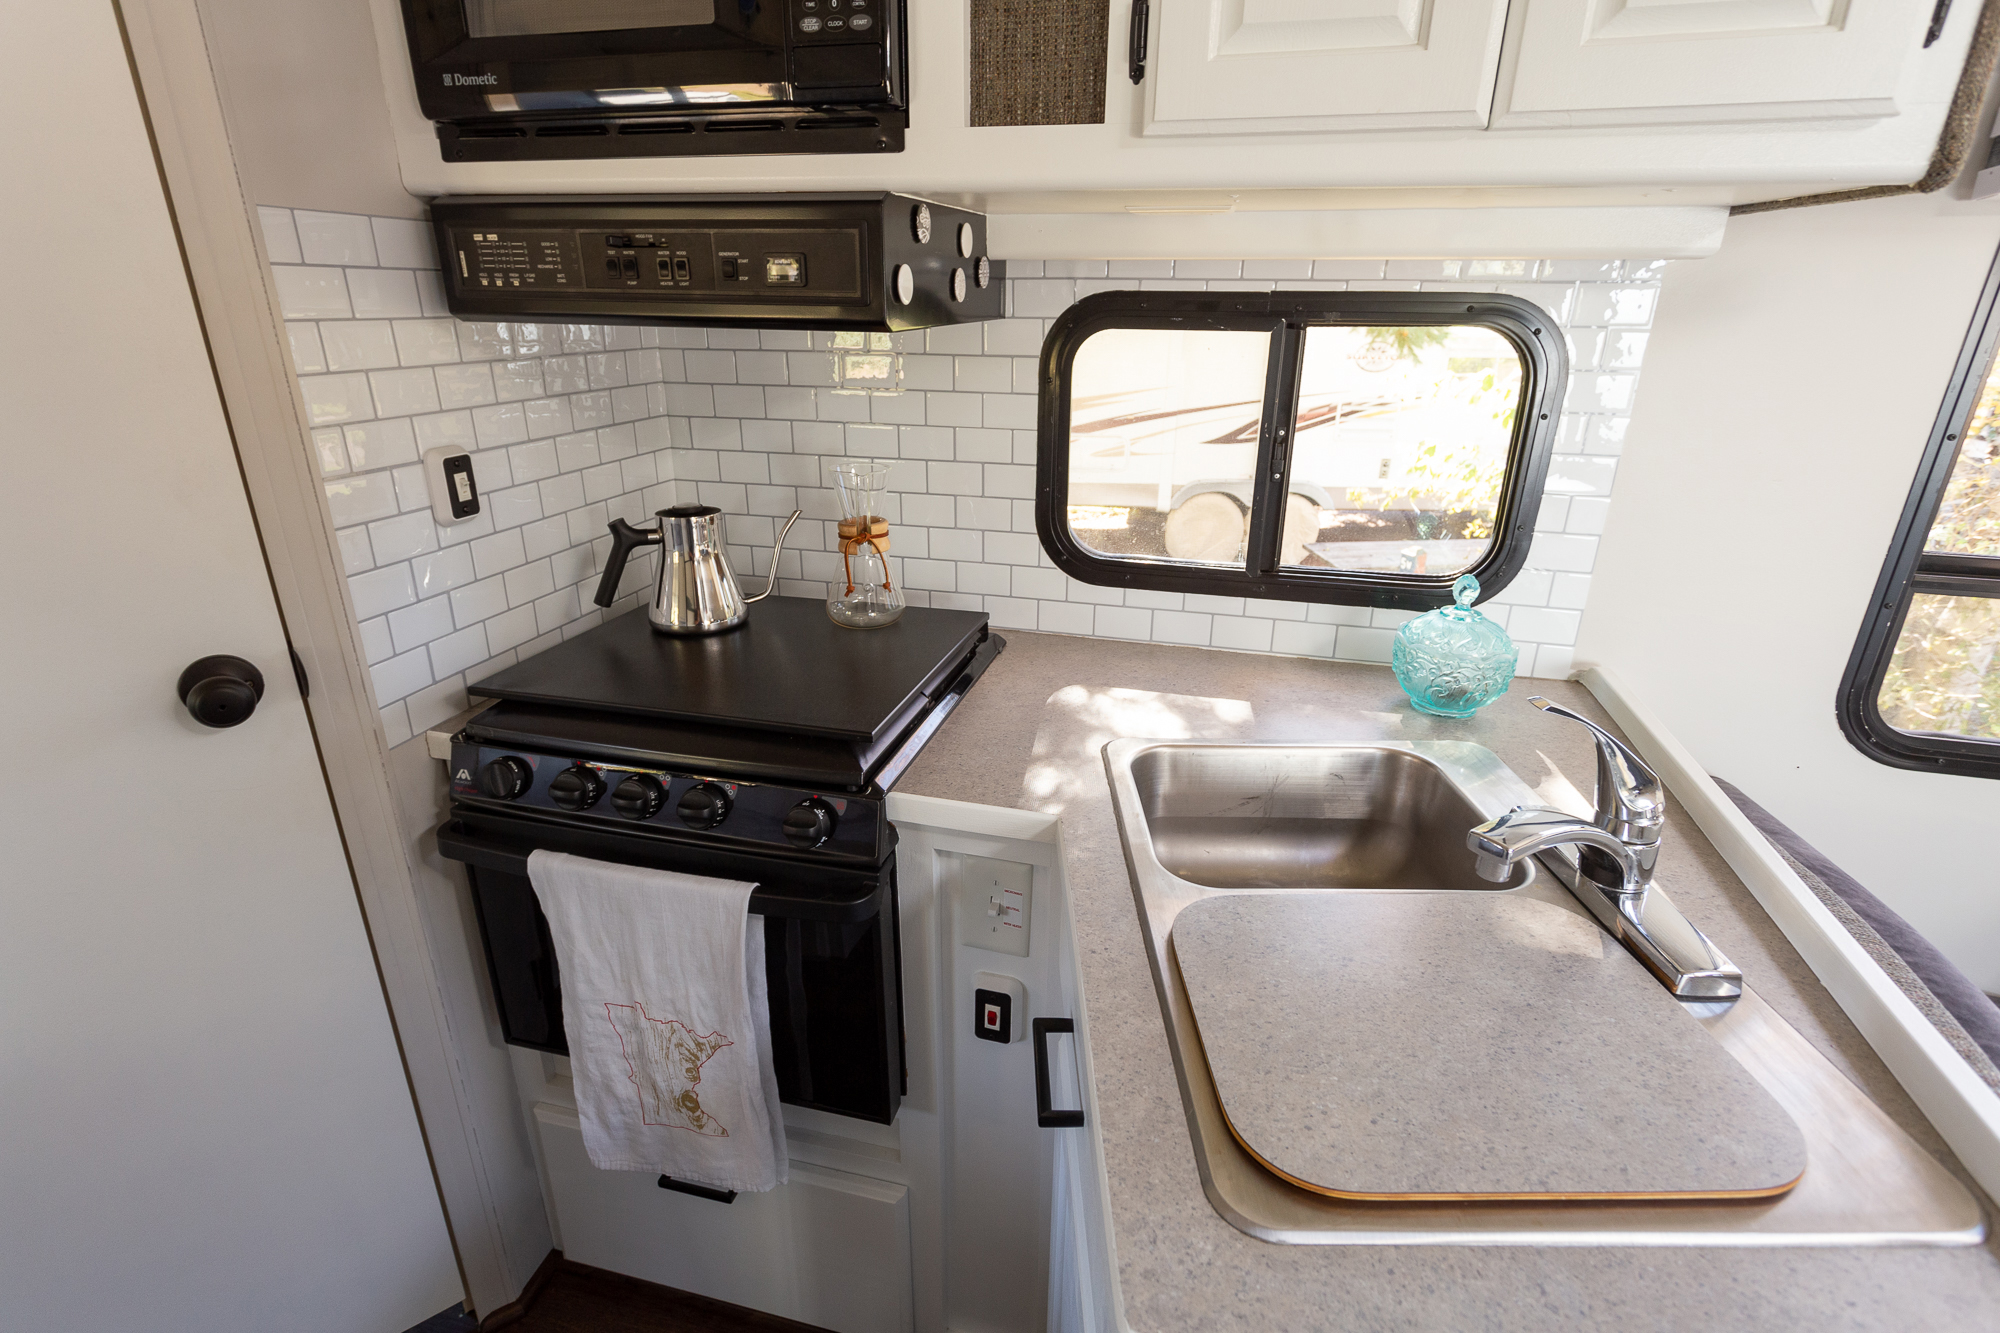 Tic Tac Tiles backsplash in Subway Mono White